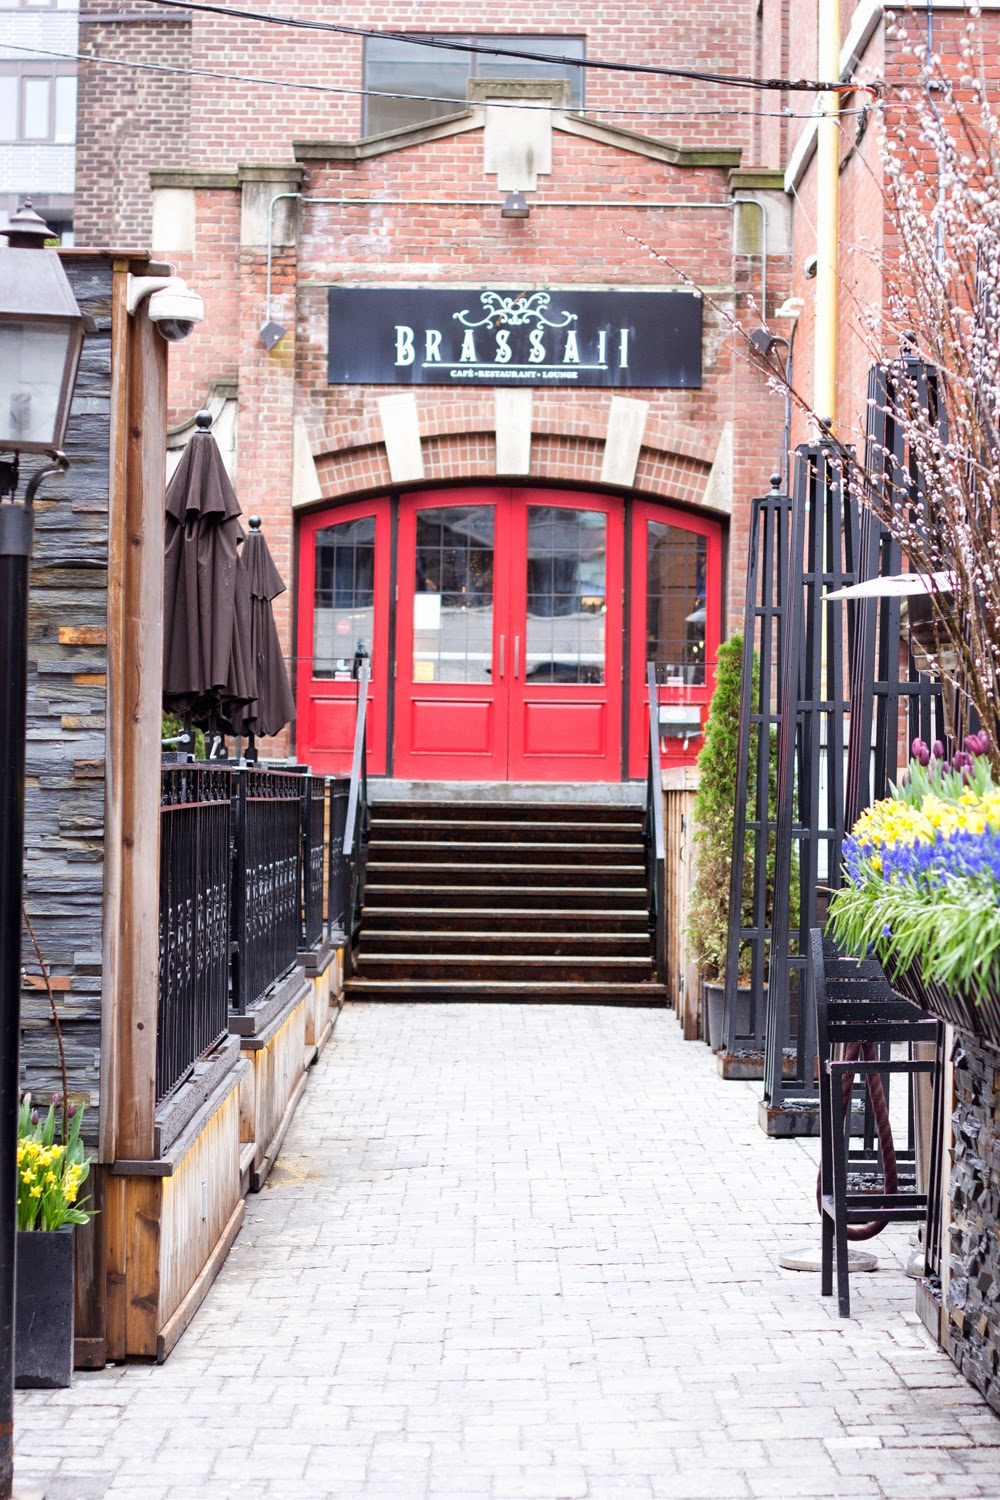 Brassaii-restaurant-and lounge, king-street, patio, red-door